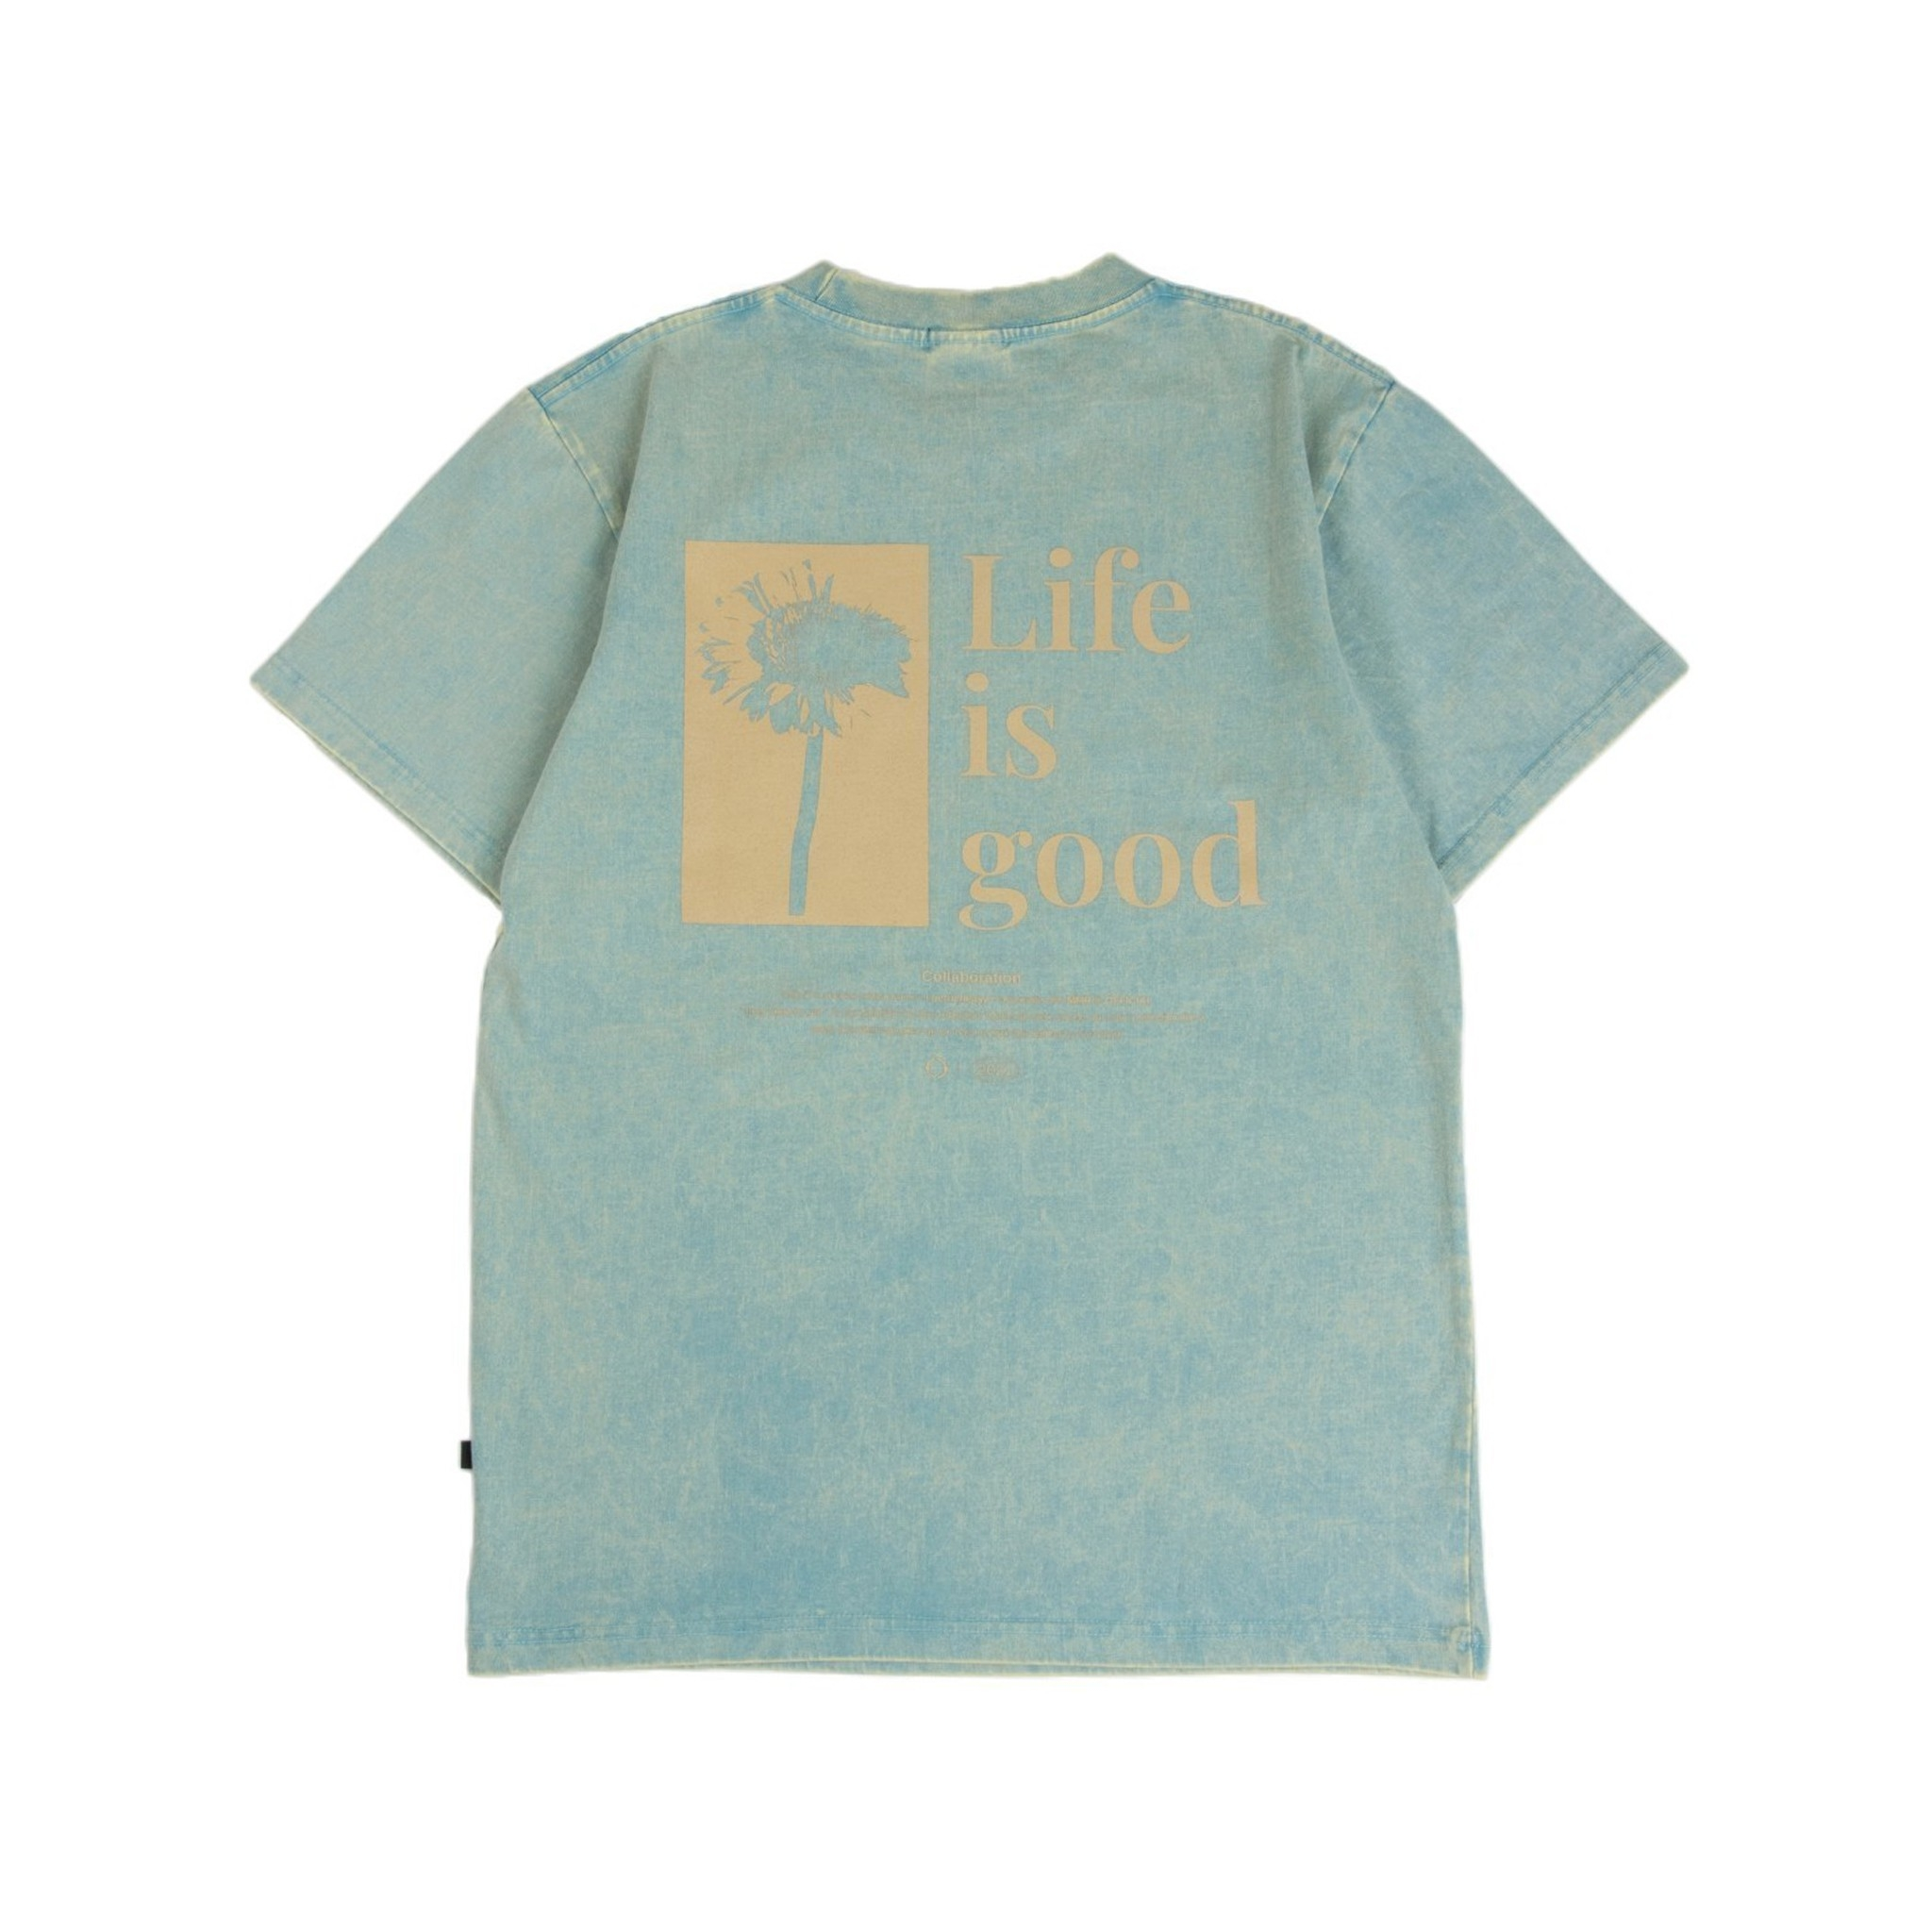 GET RICH EASY LIFE IS GOOD T-SHIRT LILY PAD